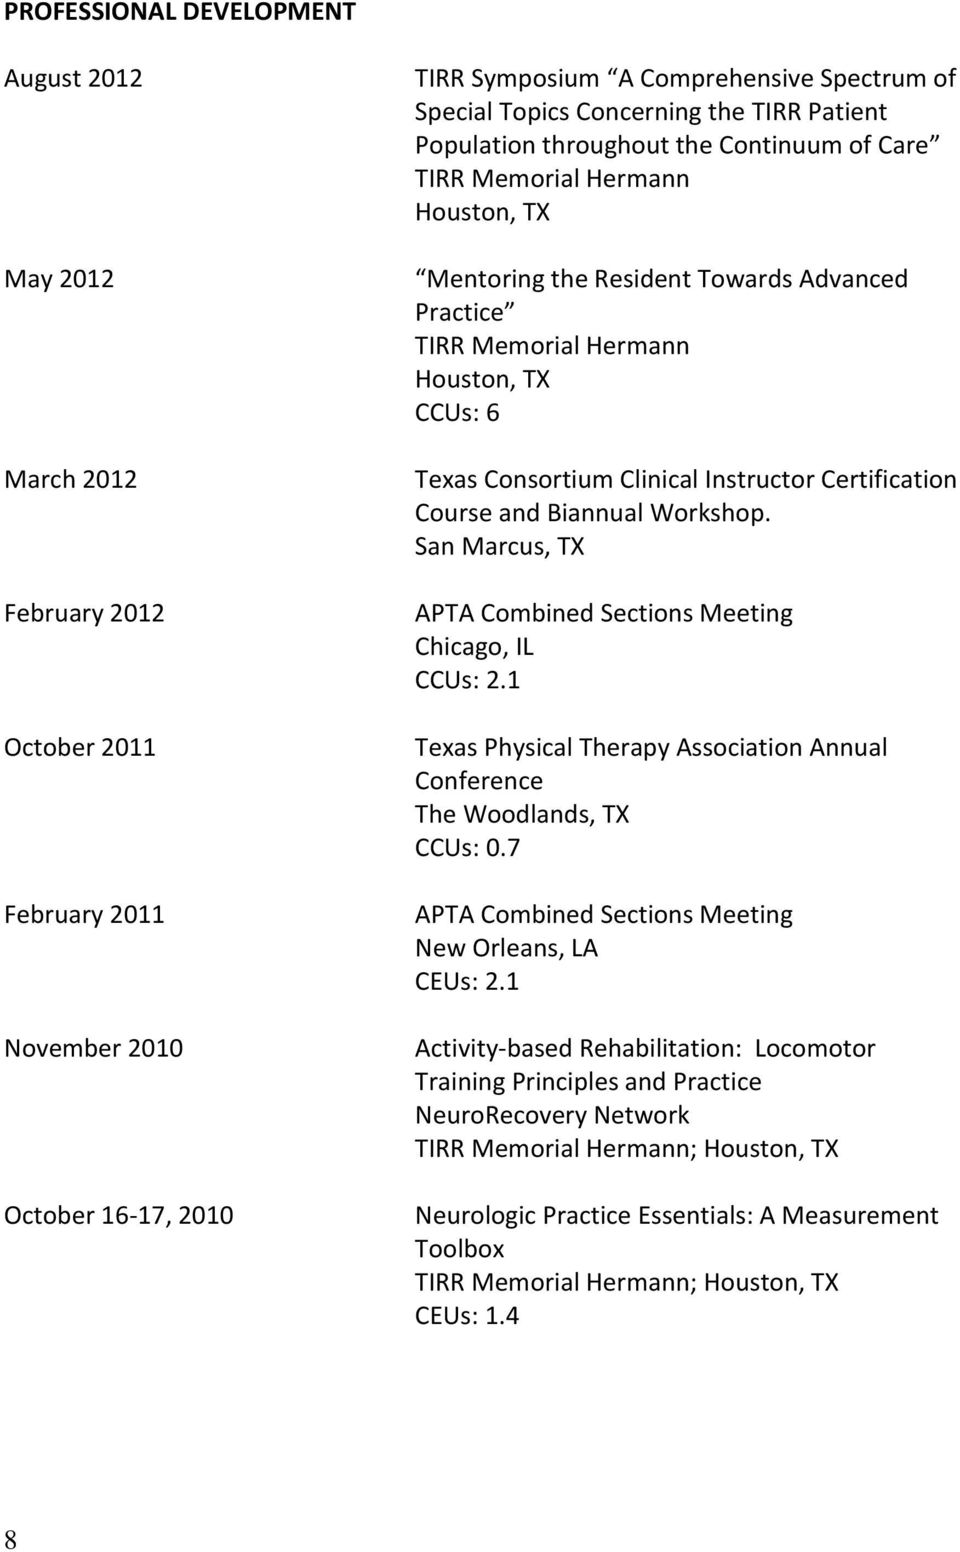 Texas Consortium Clinical Instructor Certification Course and Biannual Workshop. San Marcus, TX APTA Combined Sections Meeting Chicago, IL CCUs: 2.